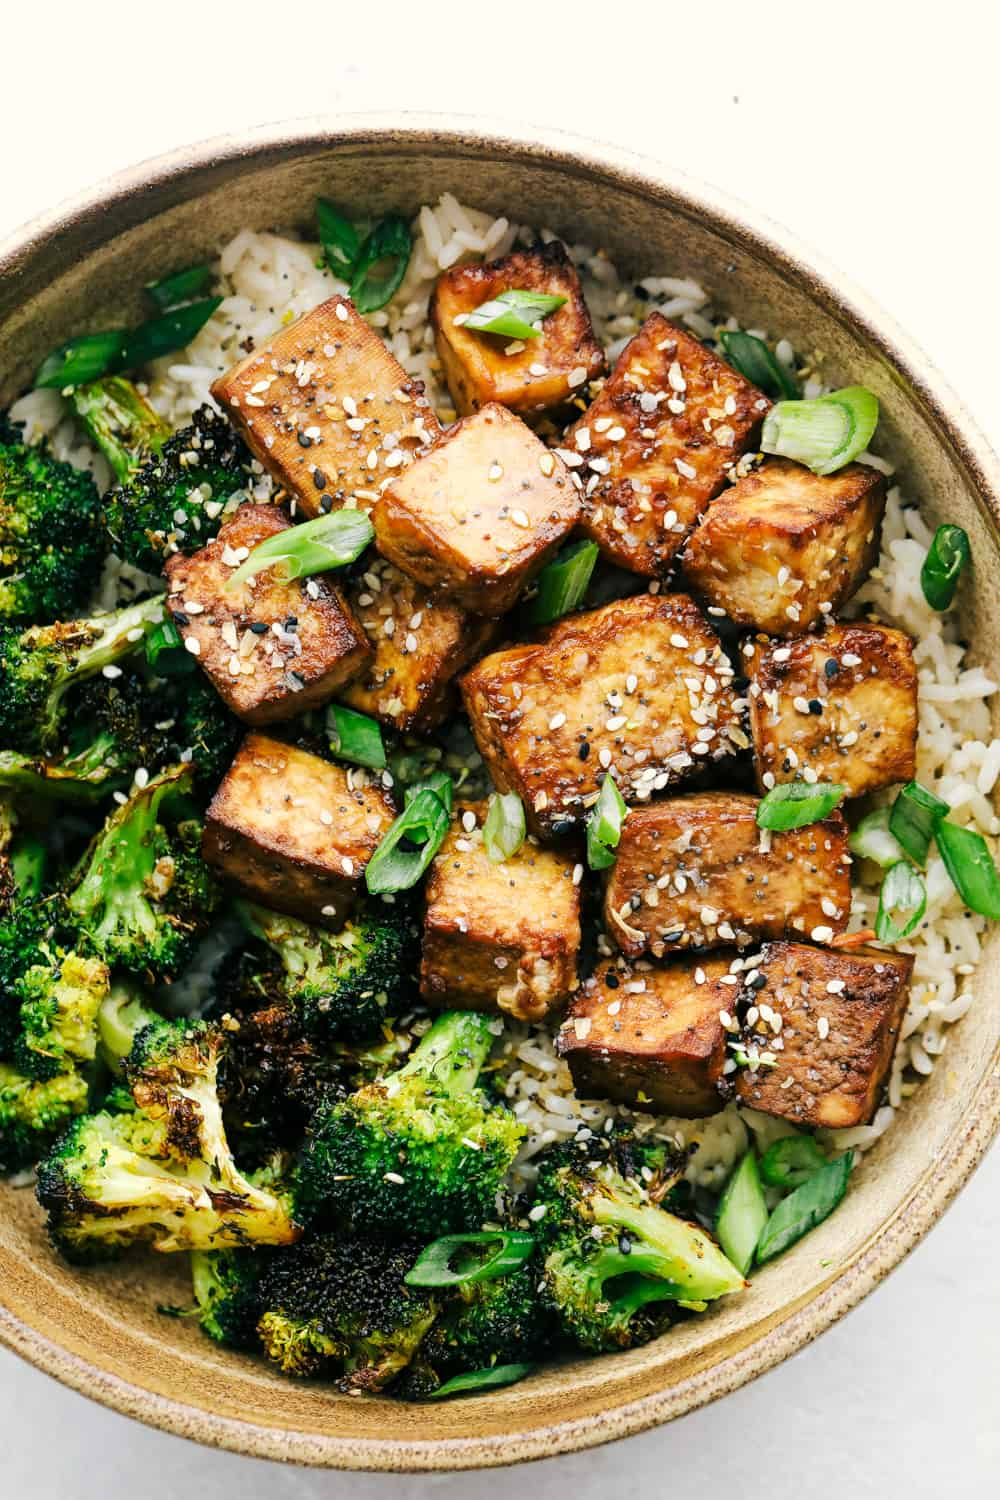 Air fryer tofu in a bowl of rice and broccoli.